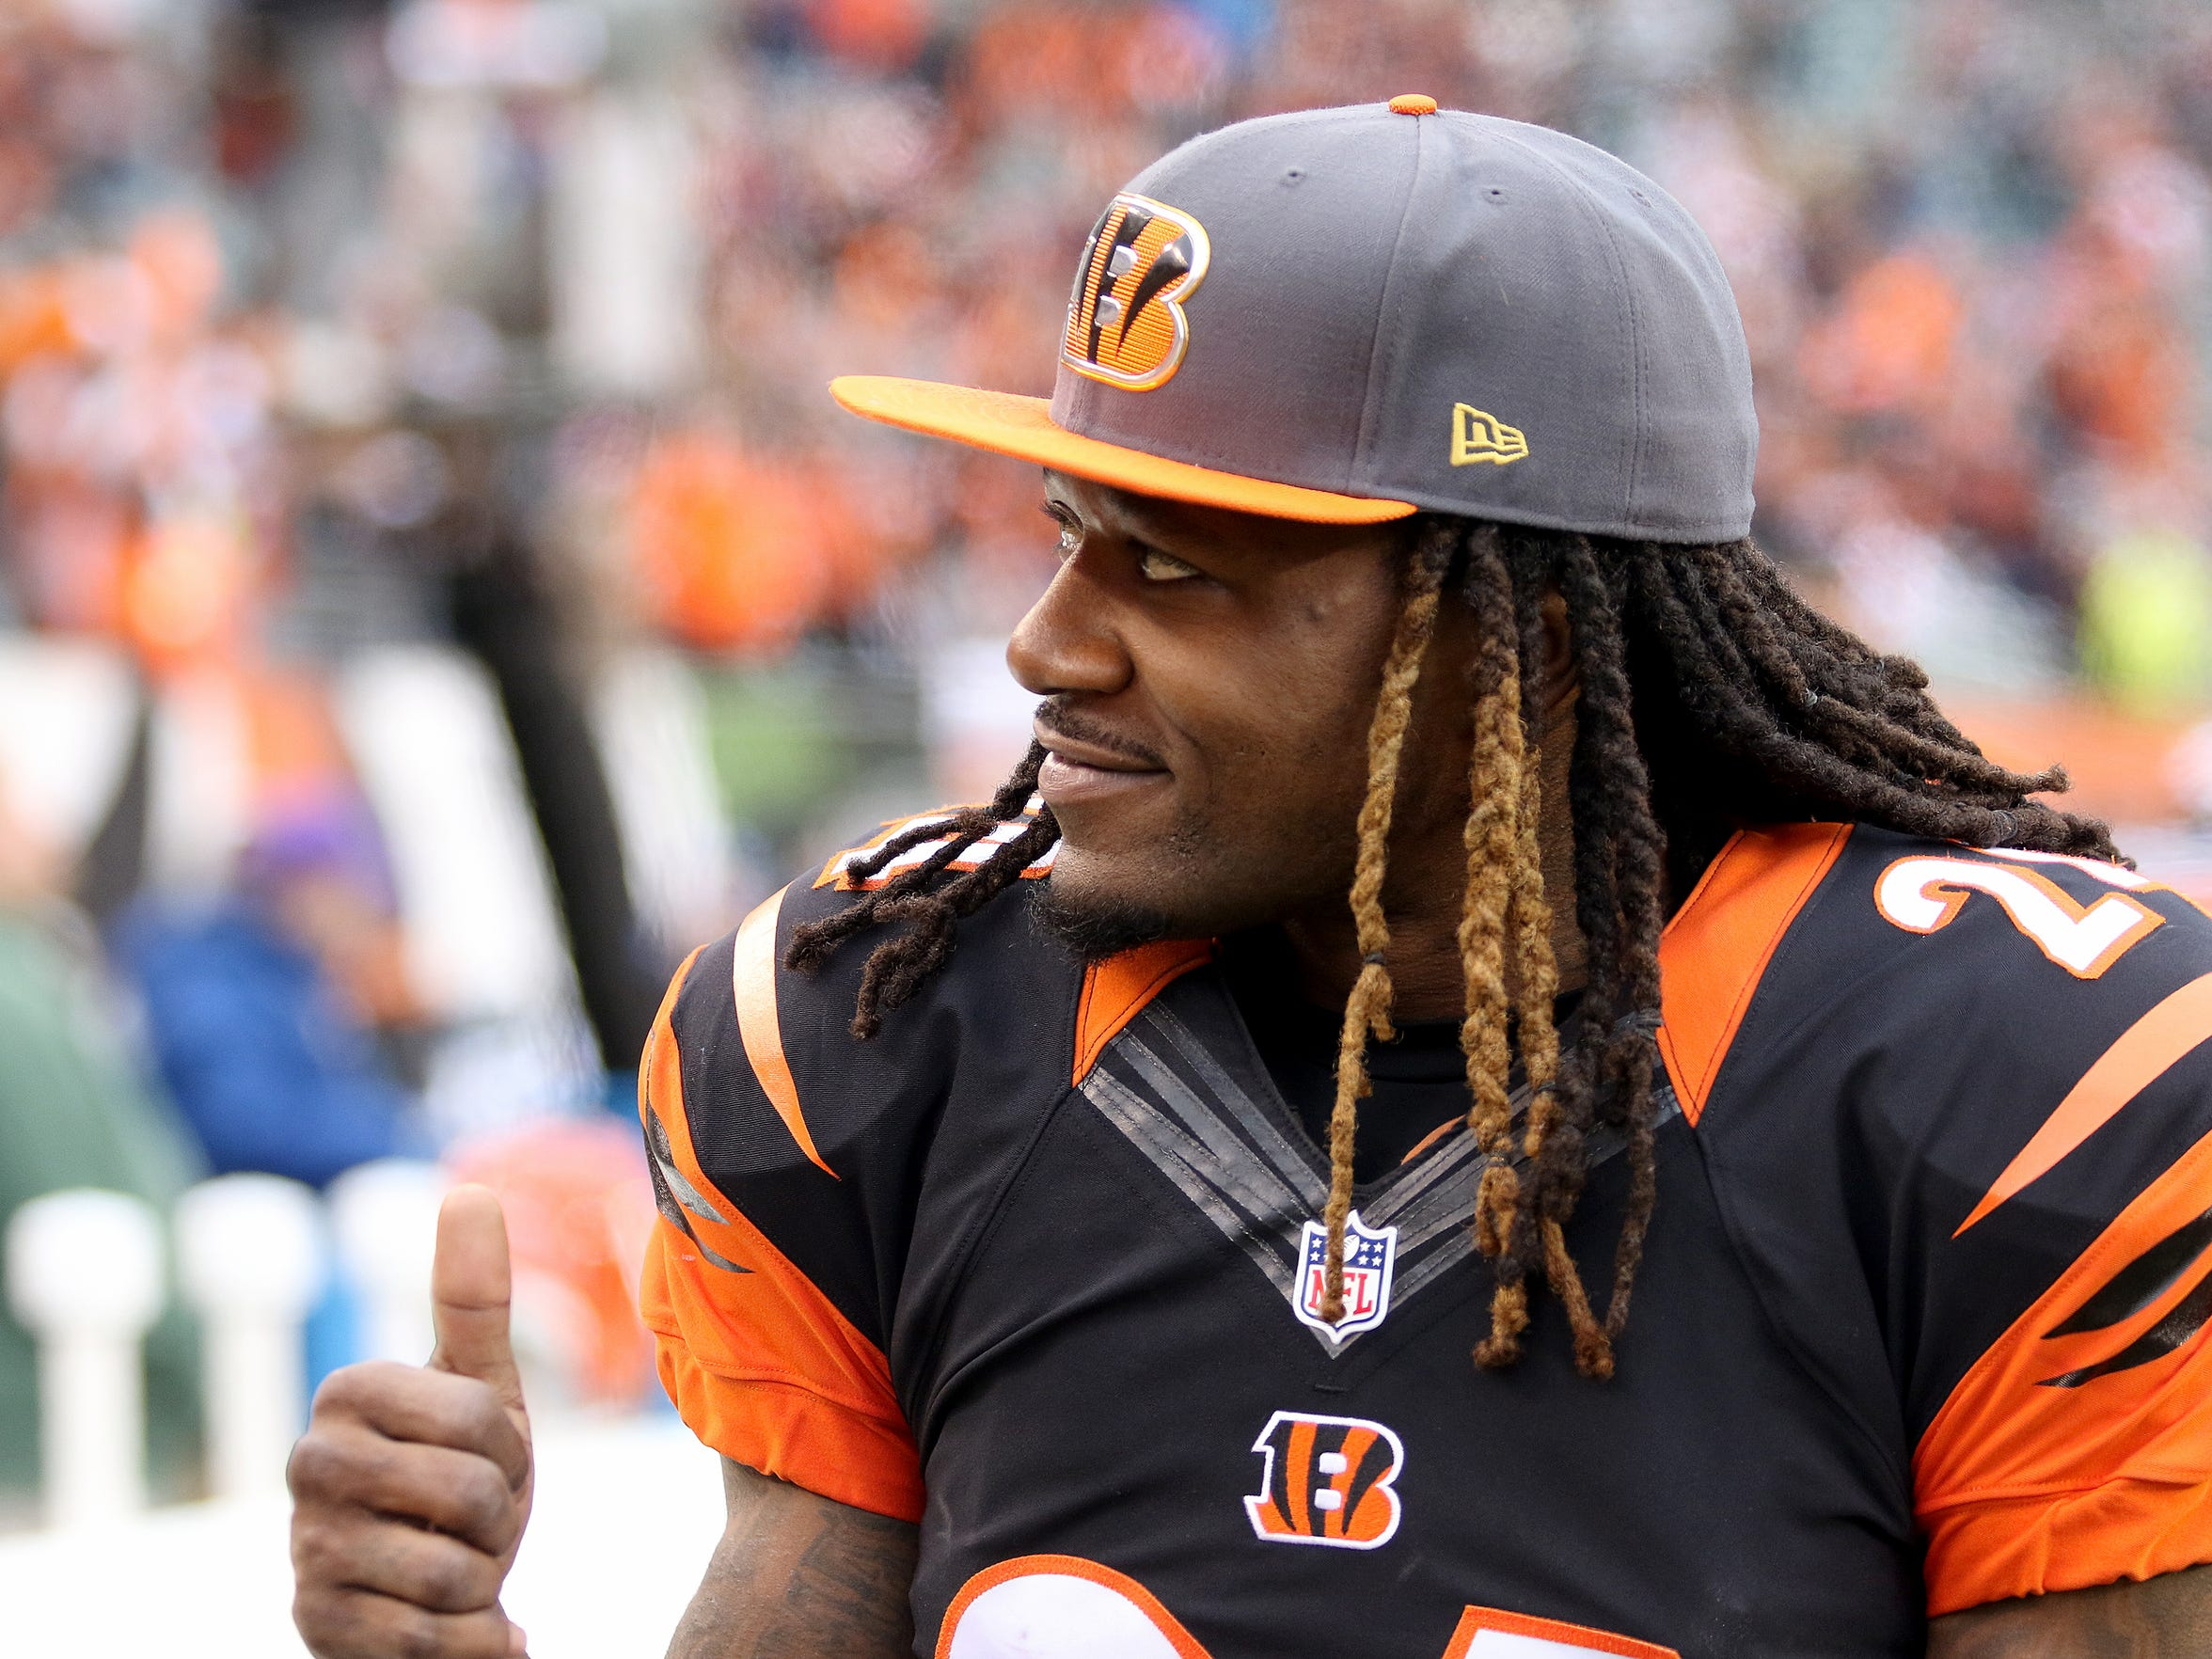 Bengals Adam Jones gives fans a thumbs-up after the